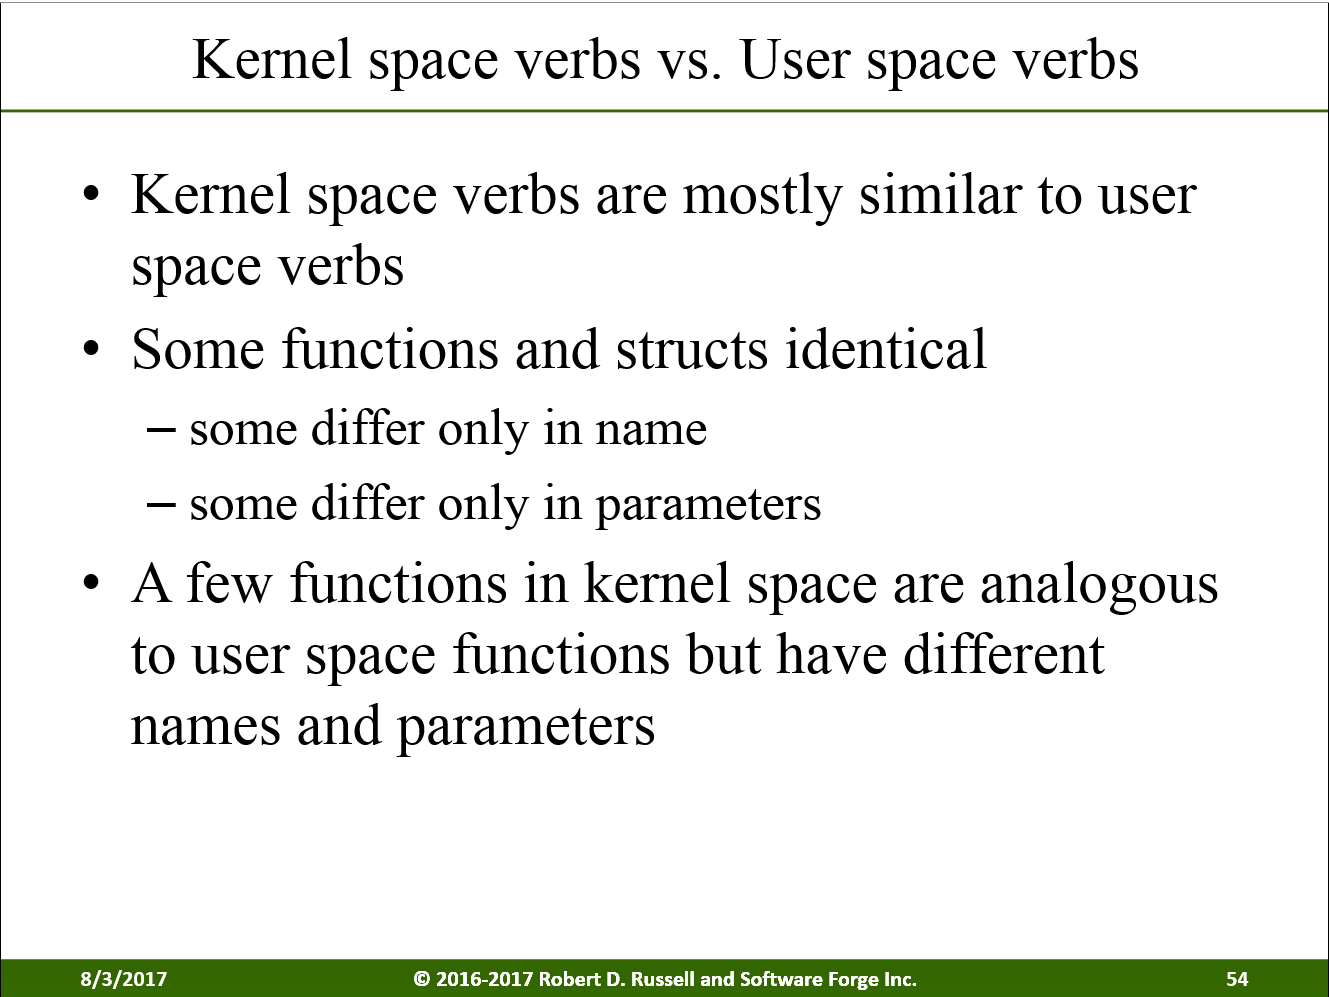 RDMA Kernel Space Vs. User Space